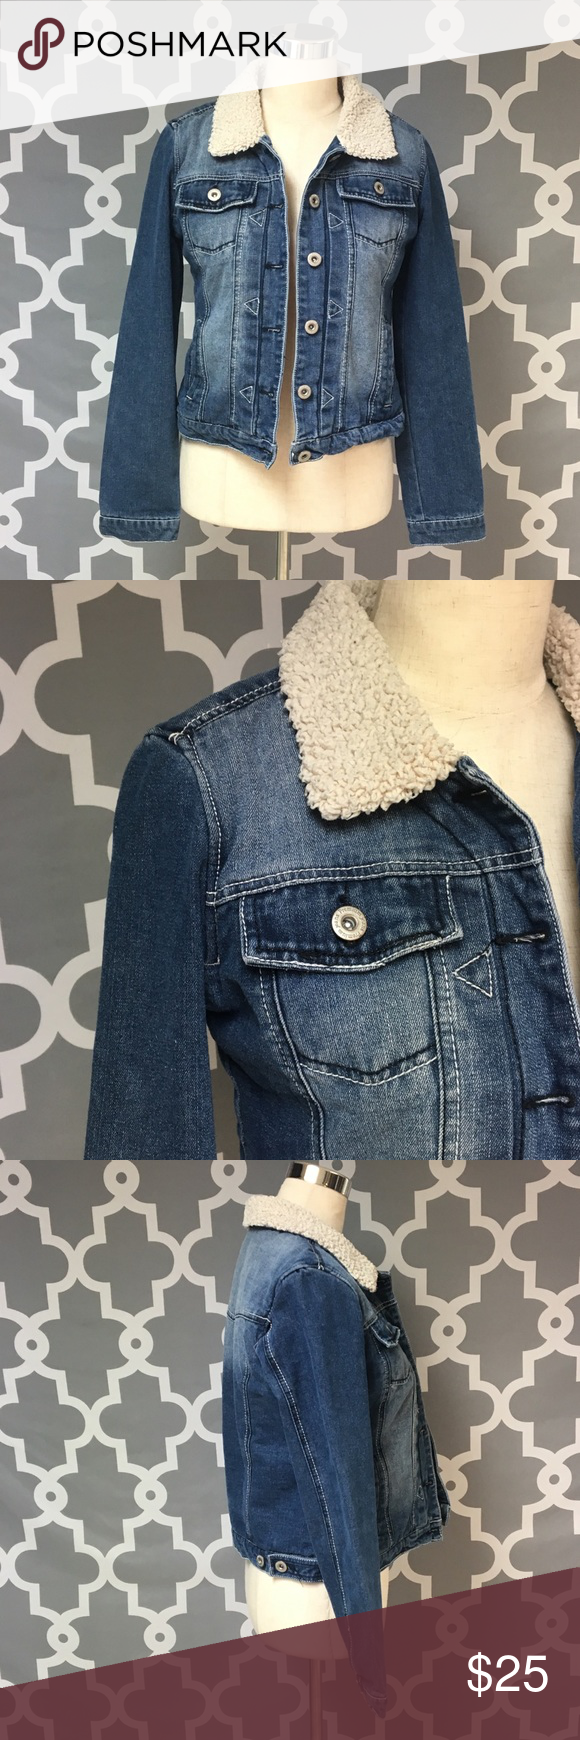 Fleece lined denim jacket denim jackets coats and shoulder